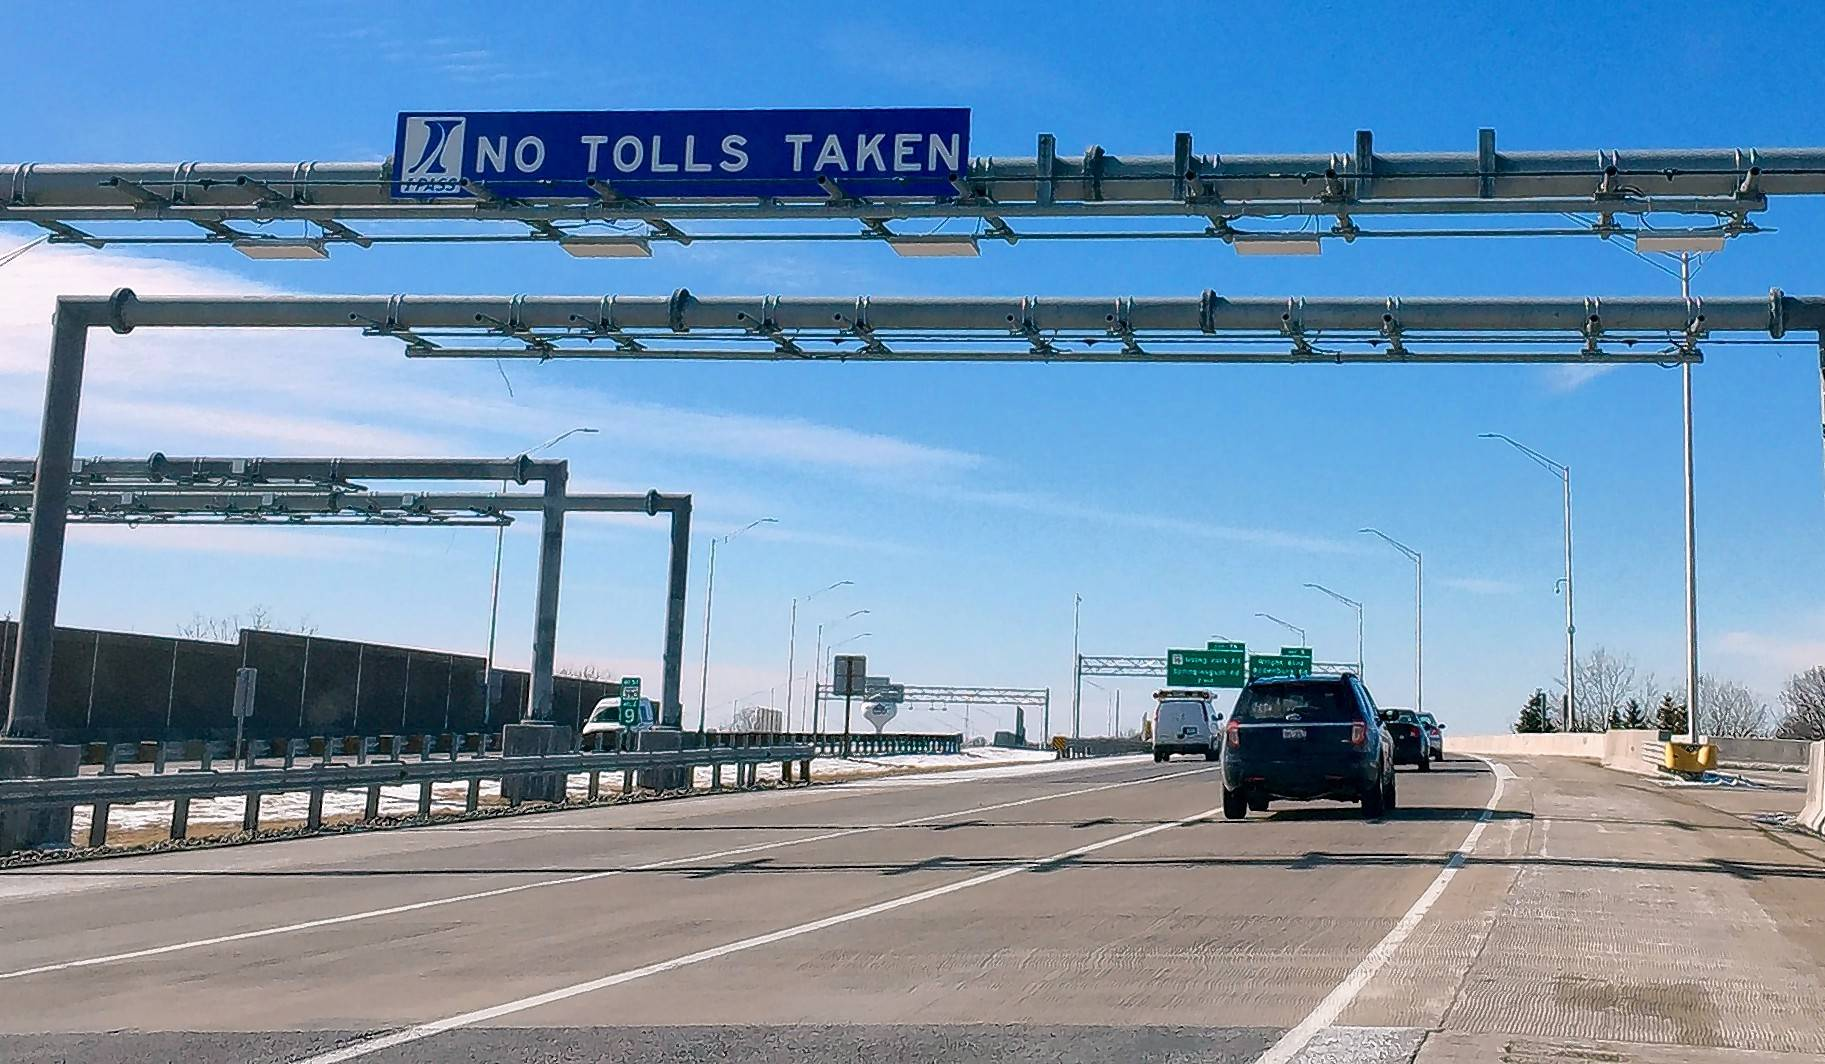 Pyke: Readers say 'no' to tolls on Elgin-O'Hare Expressway